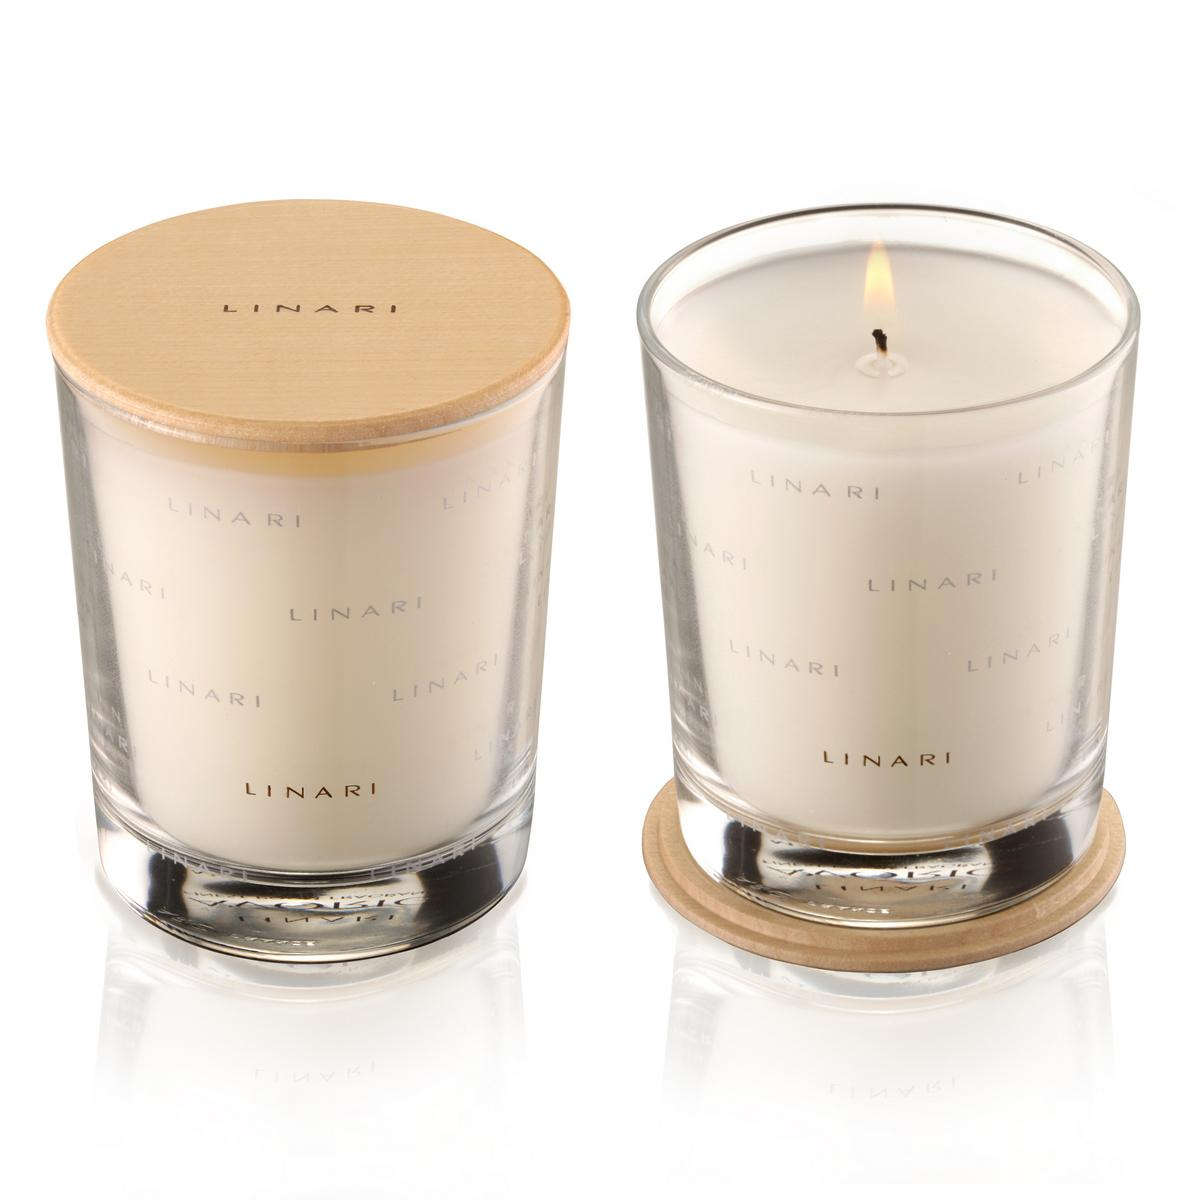 Linari rubino scented candle for Best scented candle brands